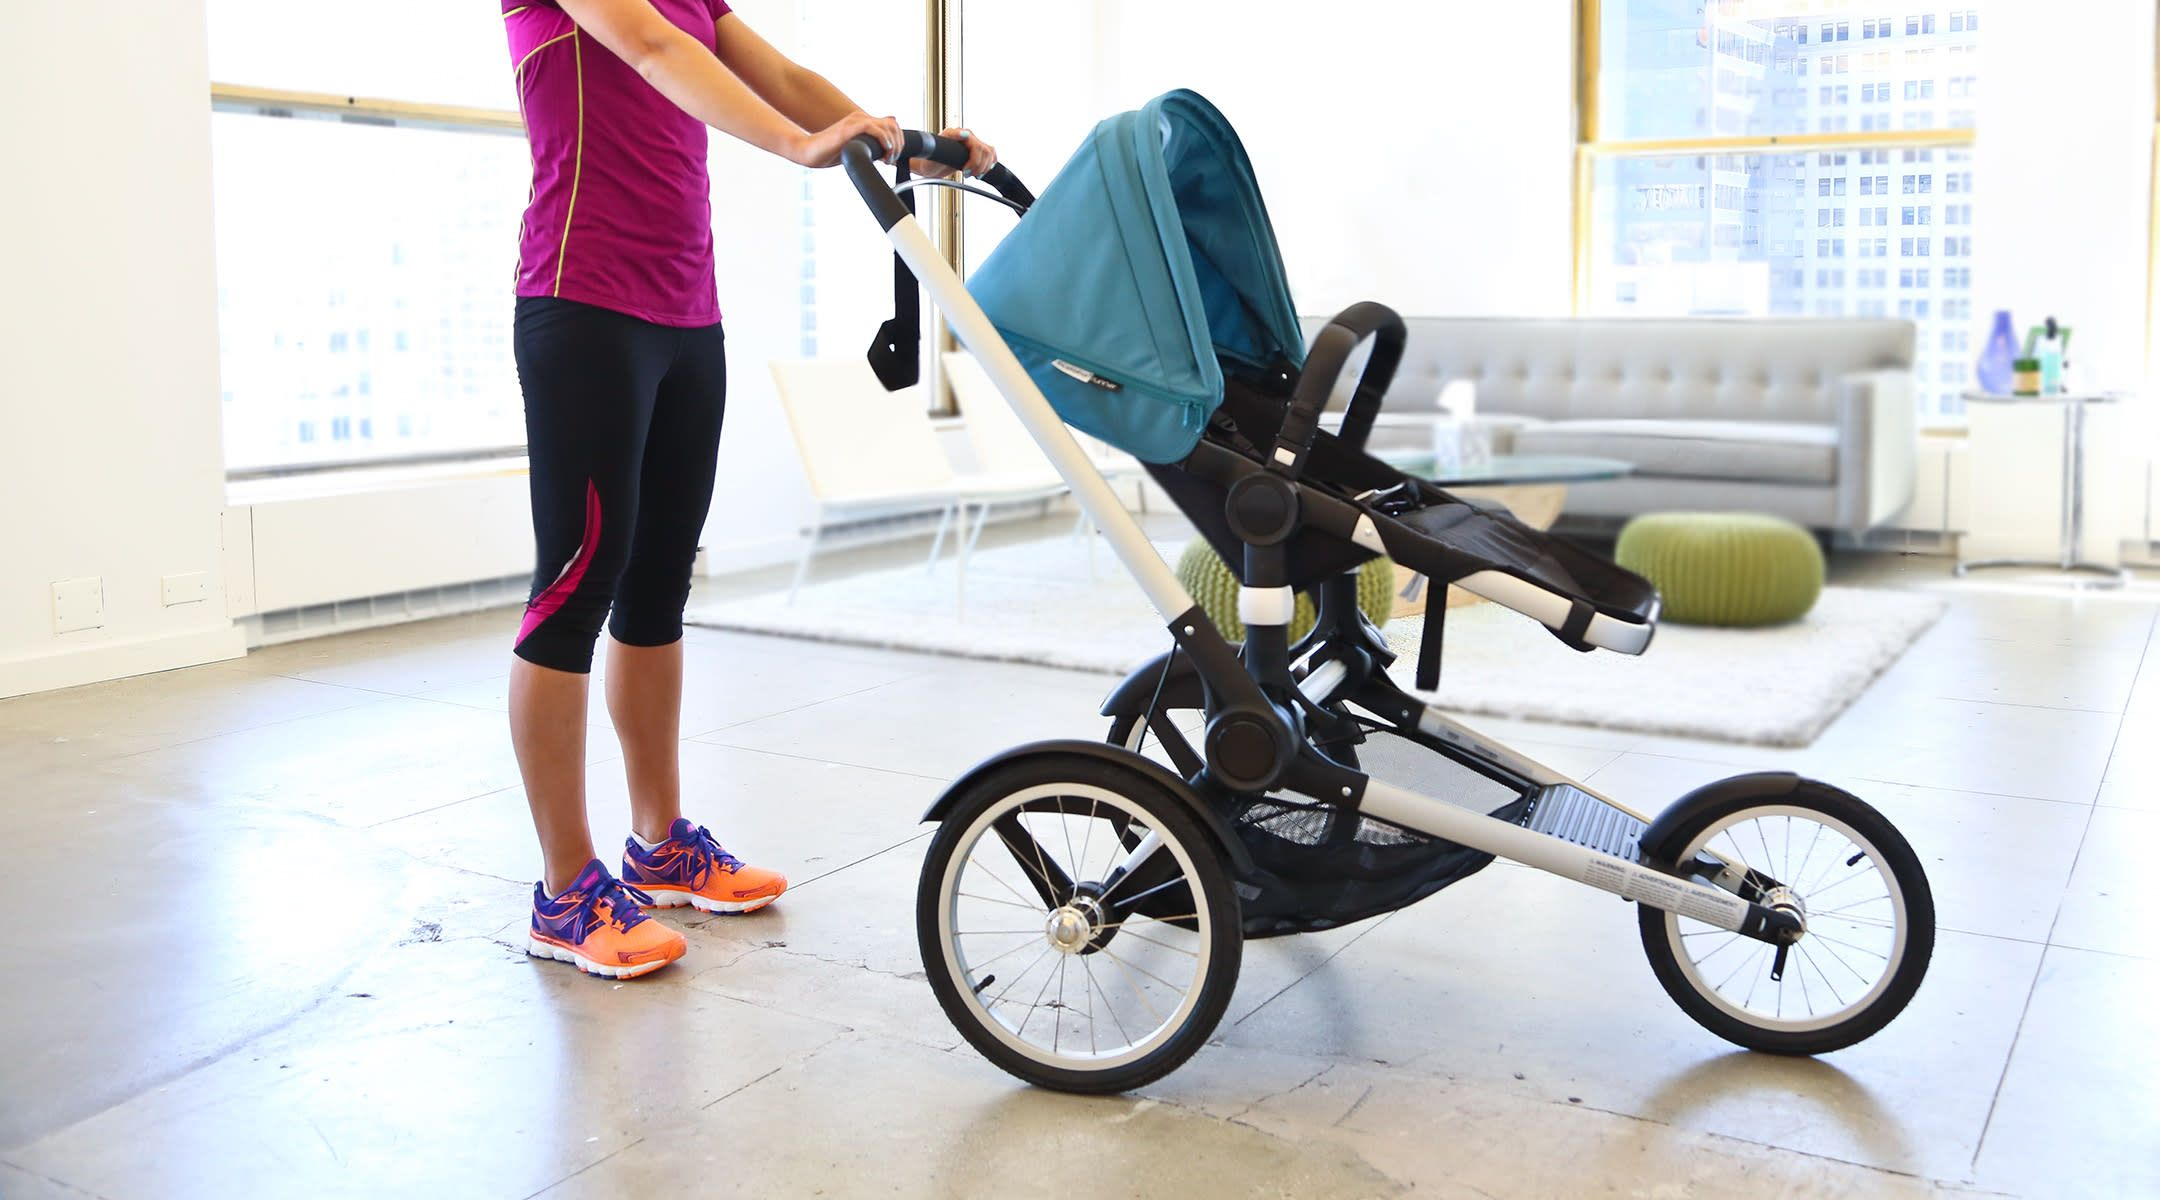 Searching for a jogging stroller? Check out our roundup of